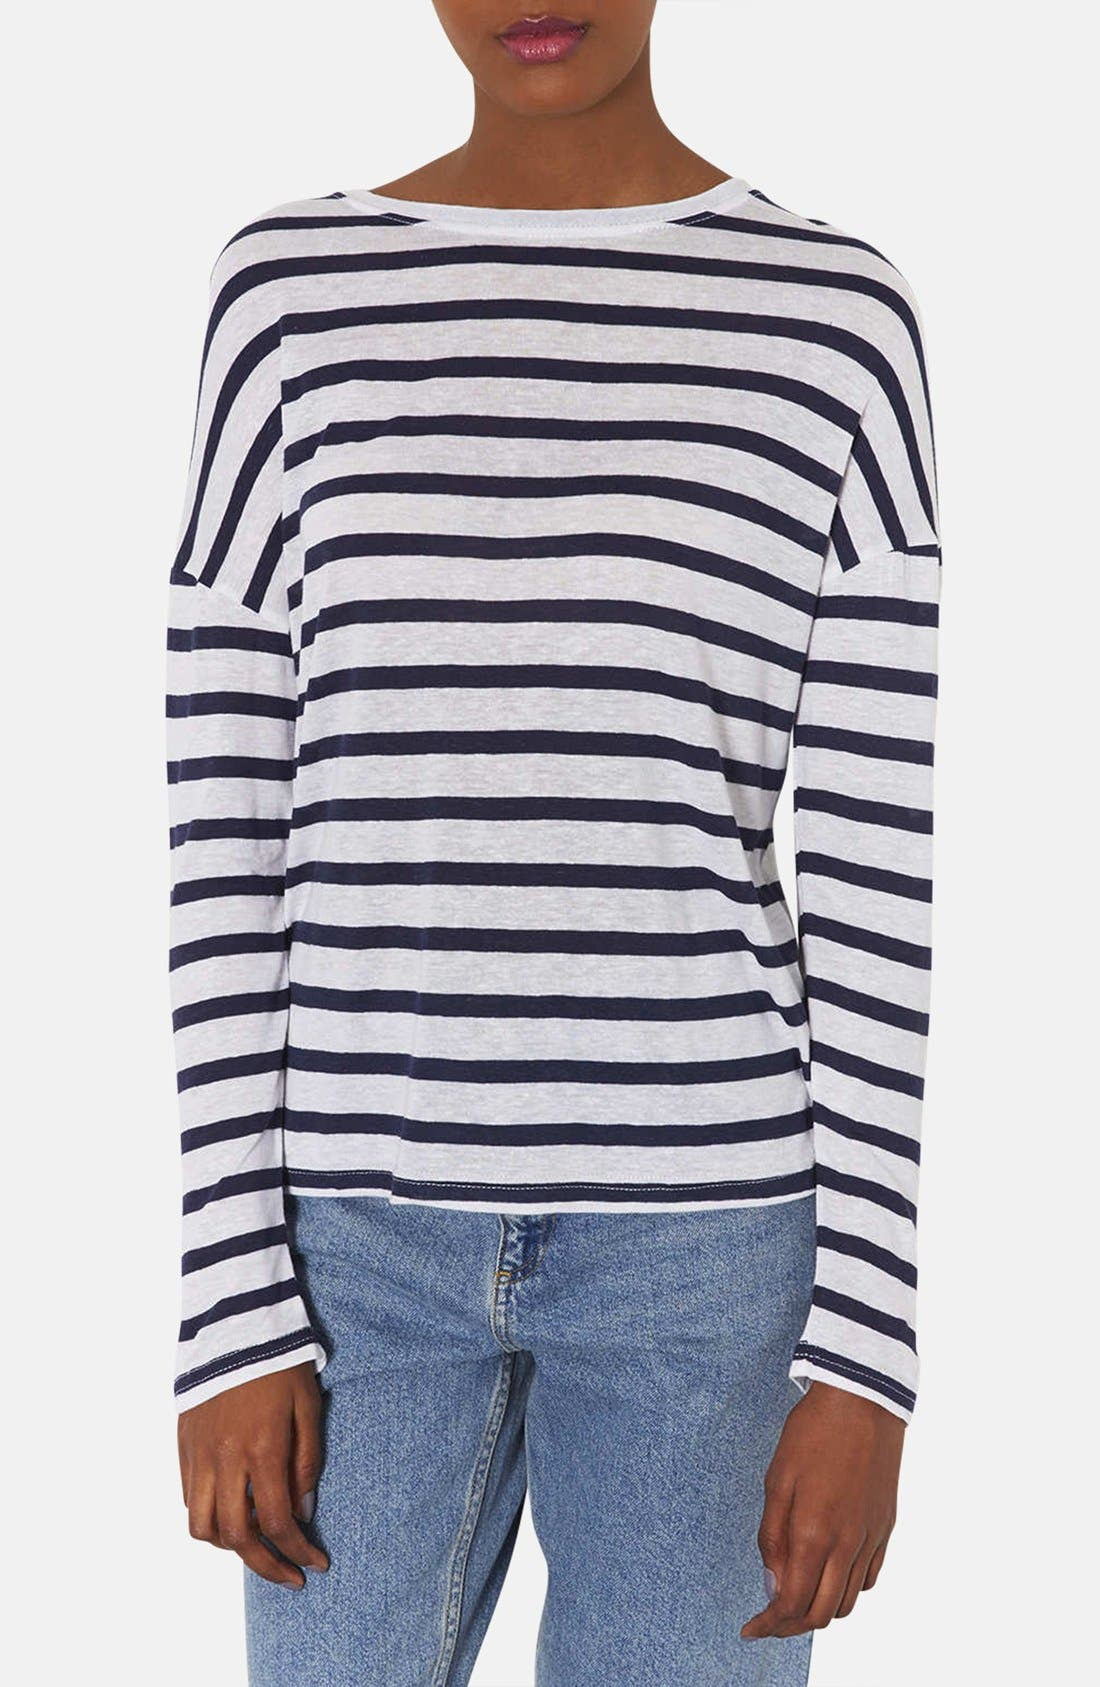 Alternate Image 1 Selected - Topshop Breton Stripe Linen Blend Tee